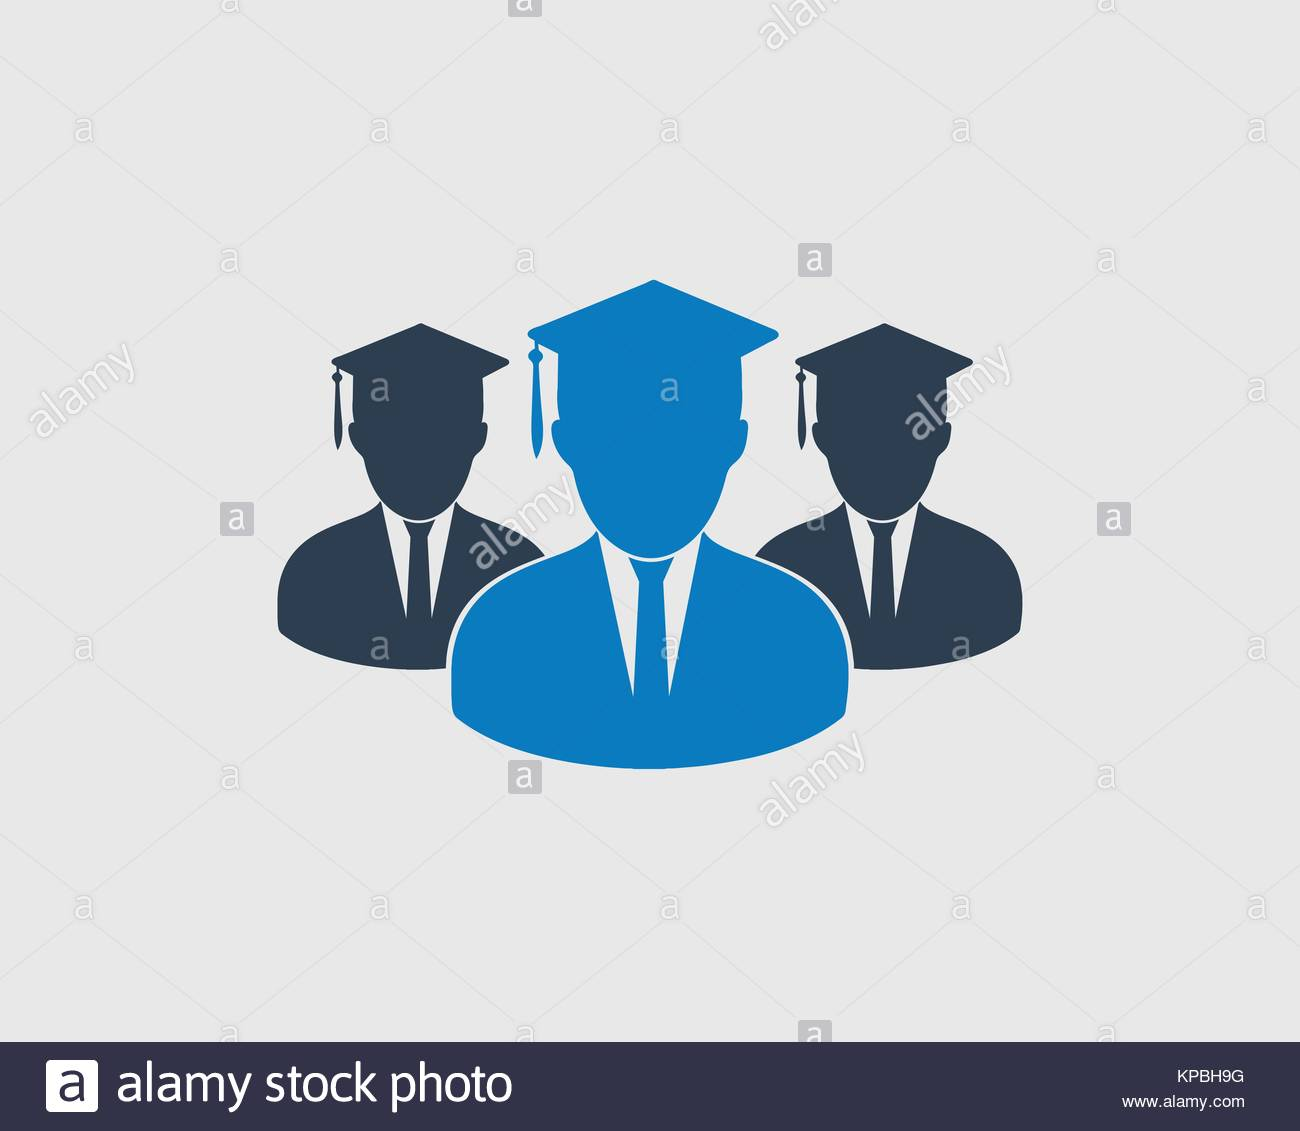 graduate students team icon with graduate head stock vector art